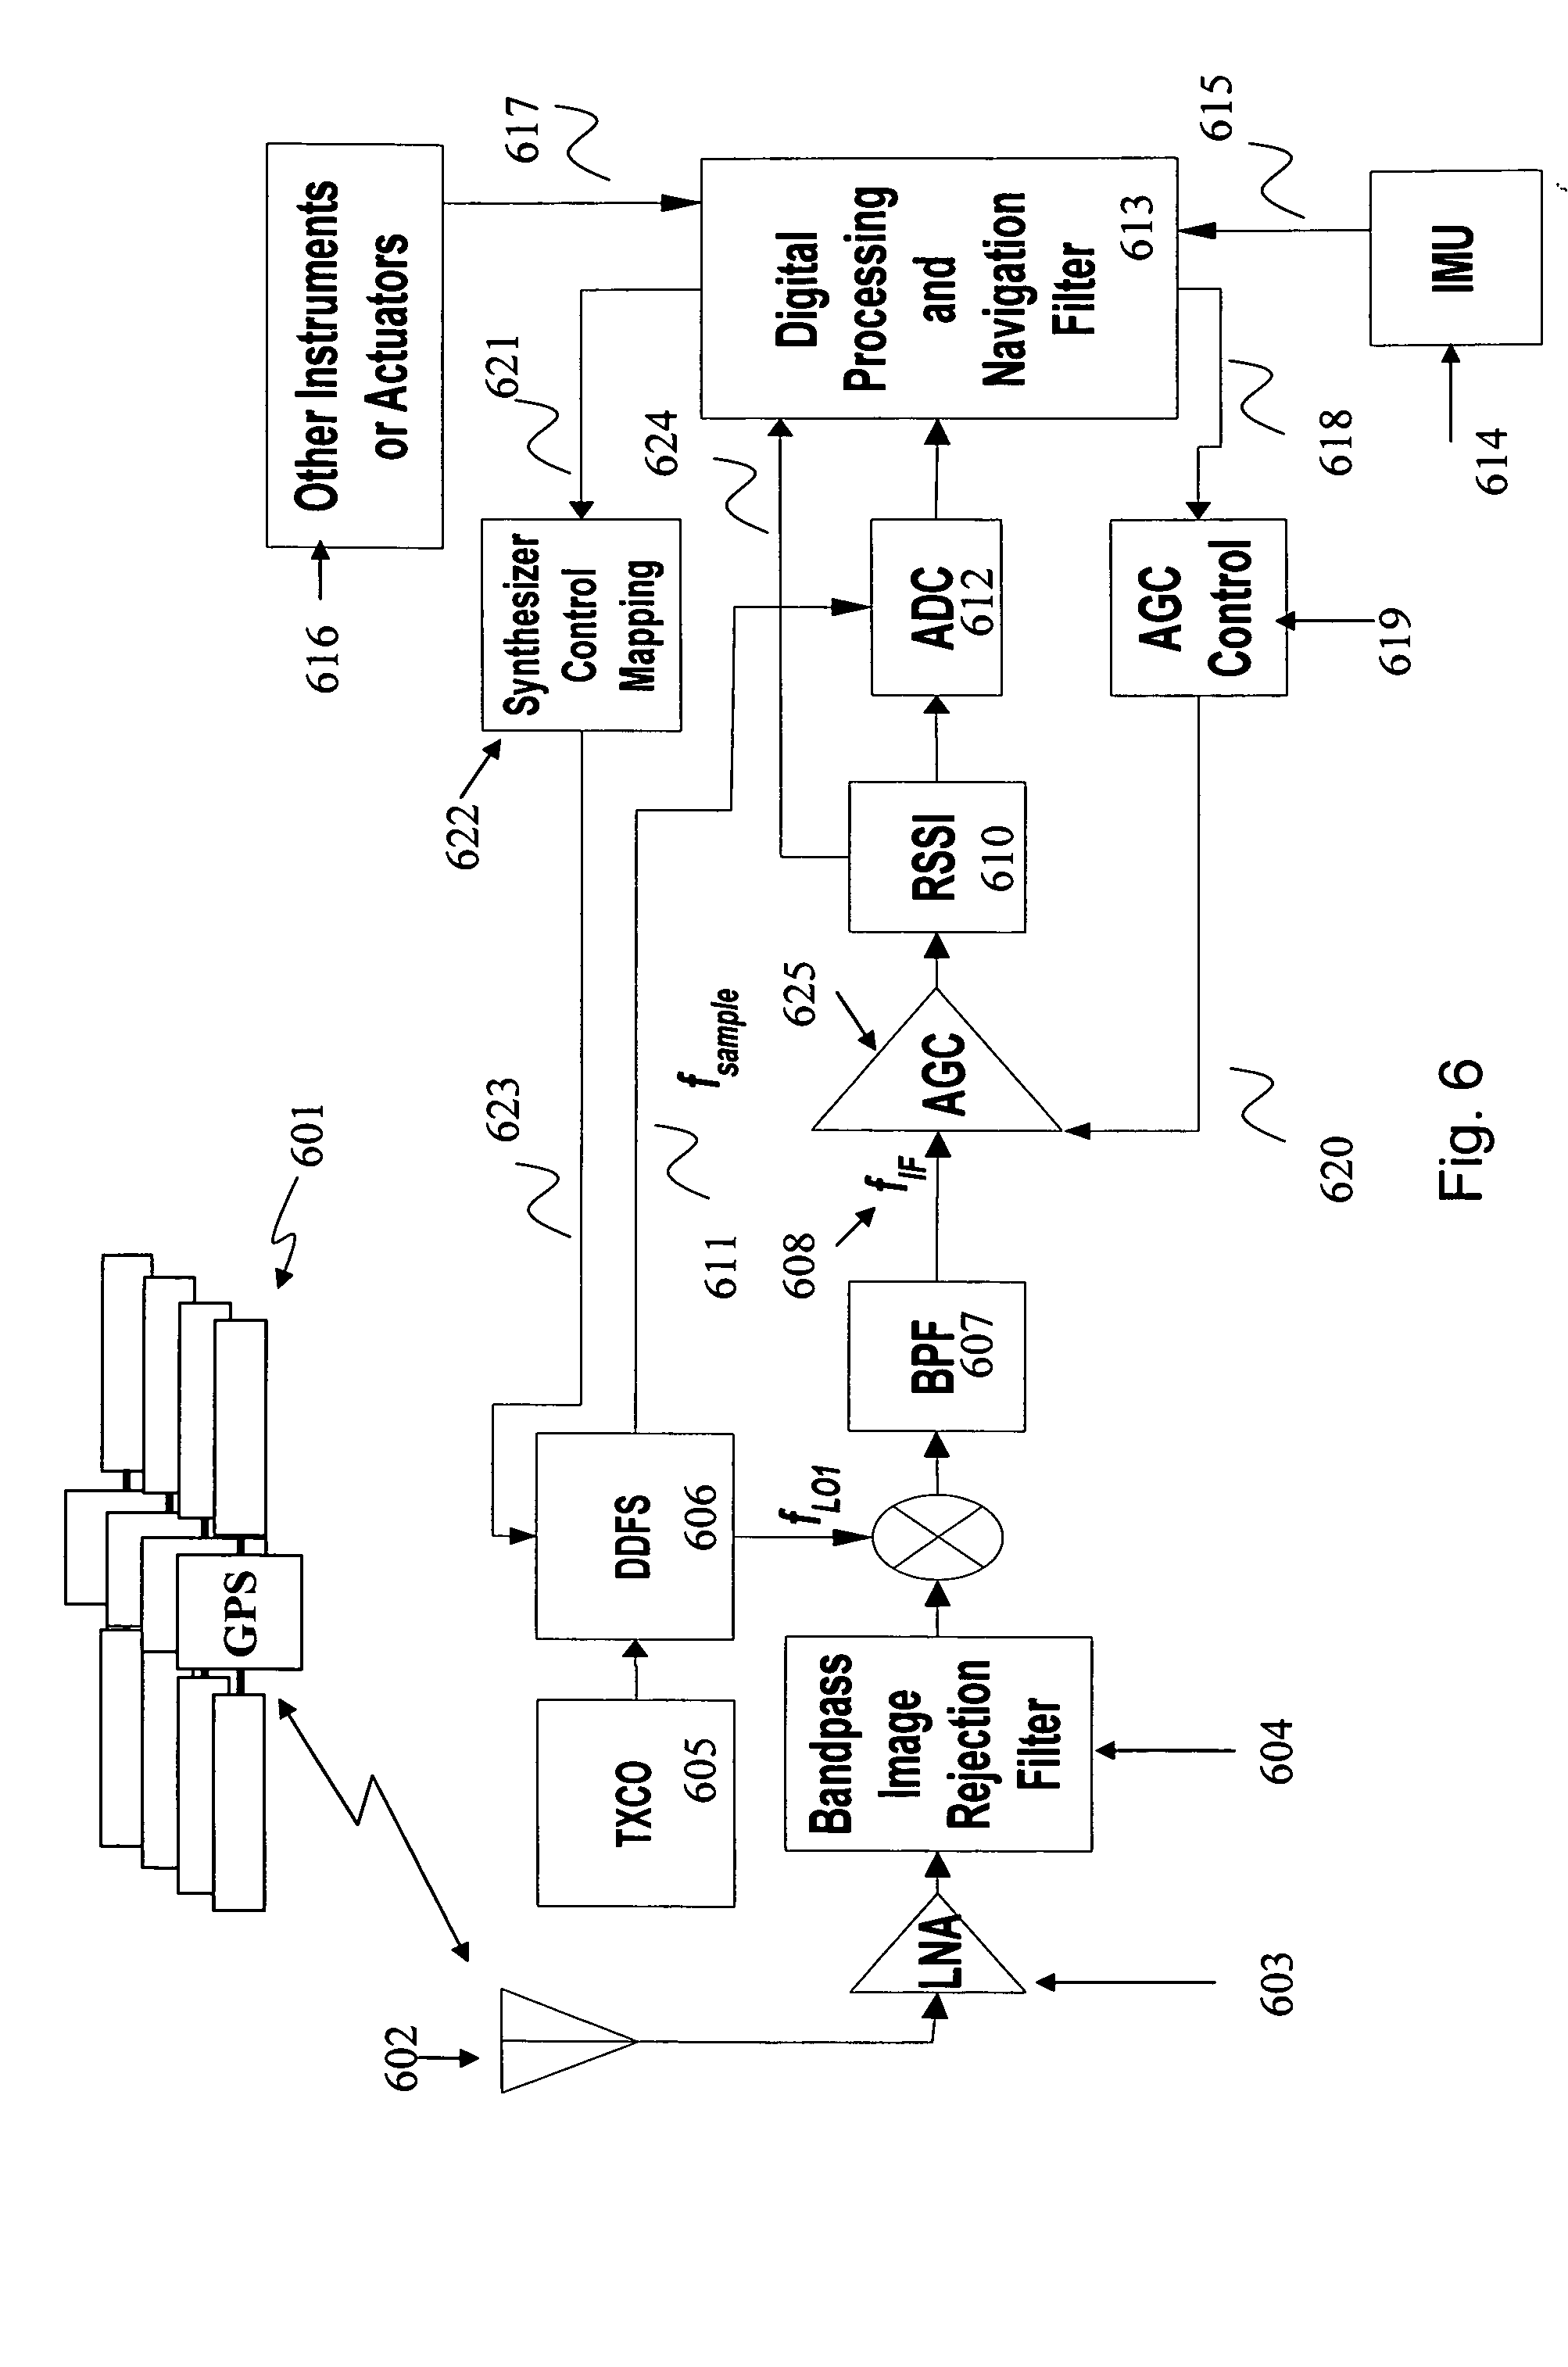 Us20050114023a1 Fault Tolerant System Apparatus And Method Egrated Circuit Type 747 Accommodates Two Operational Amplifiers Google Patents